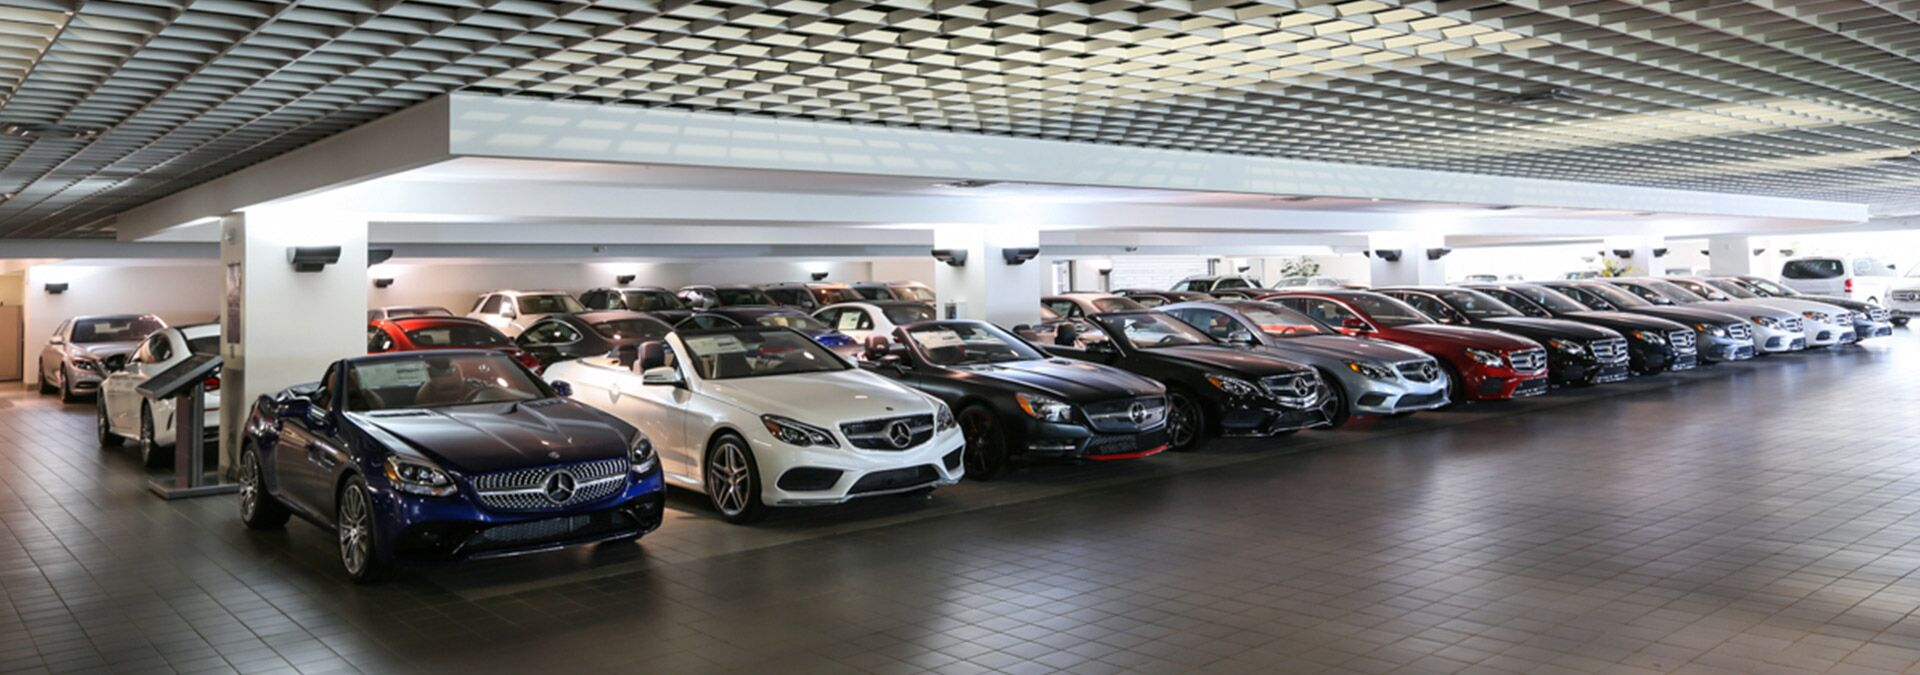 mercedes benz of cutler bay. Cars Review. Best American Auto & Cars Review